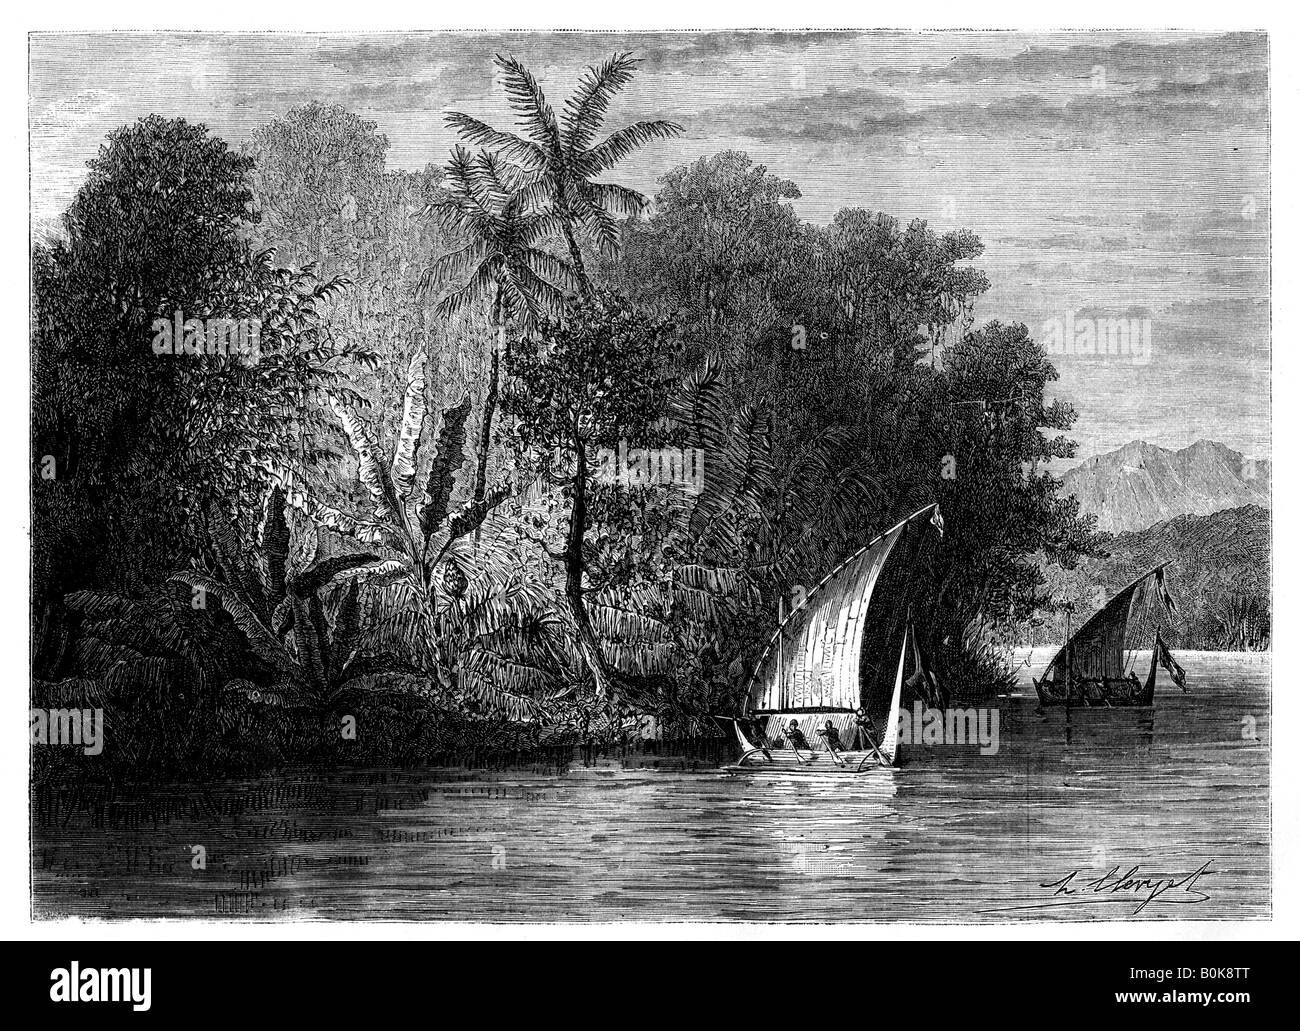 A sight at Celebes, Indonesia, 19th century. Artist: Hubert Clerget - Stock Image